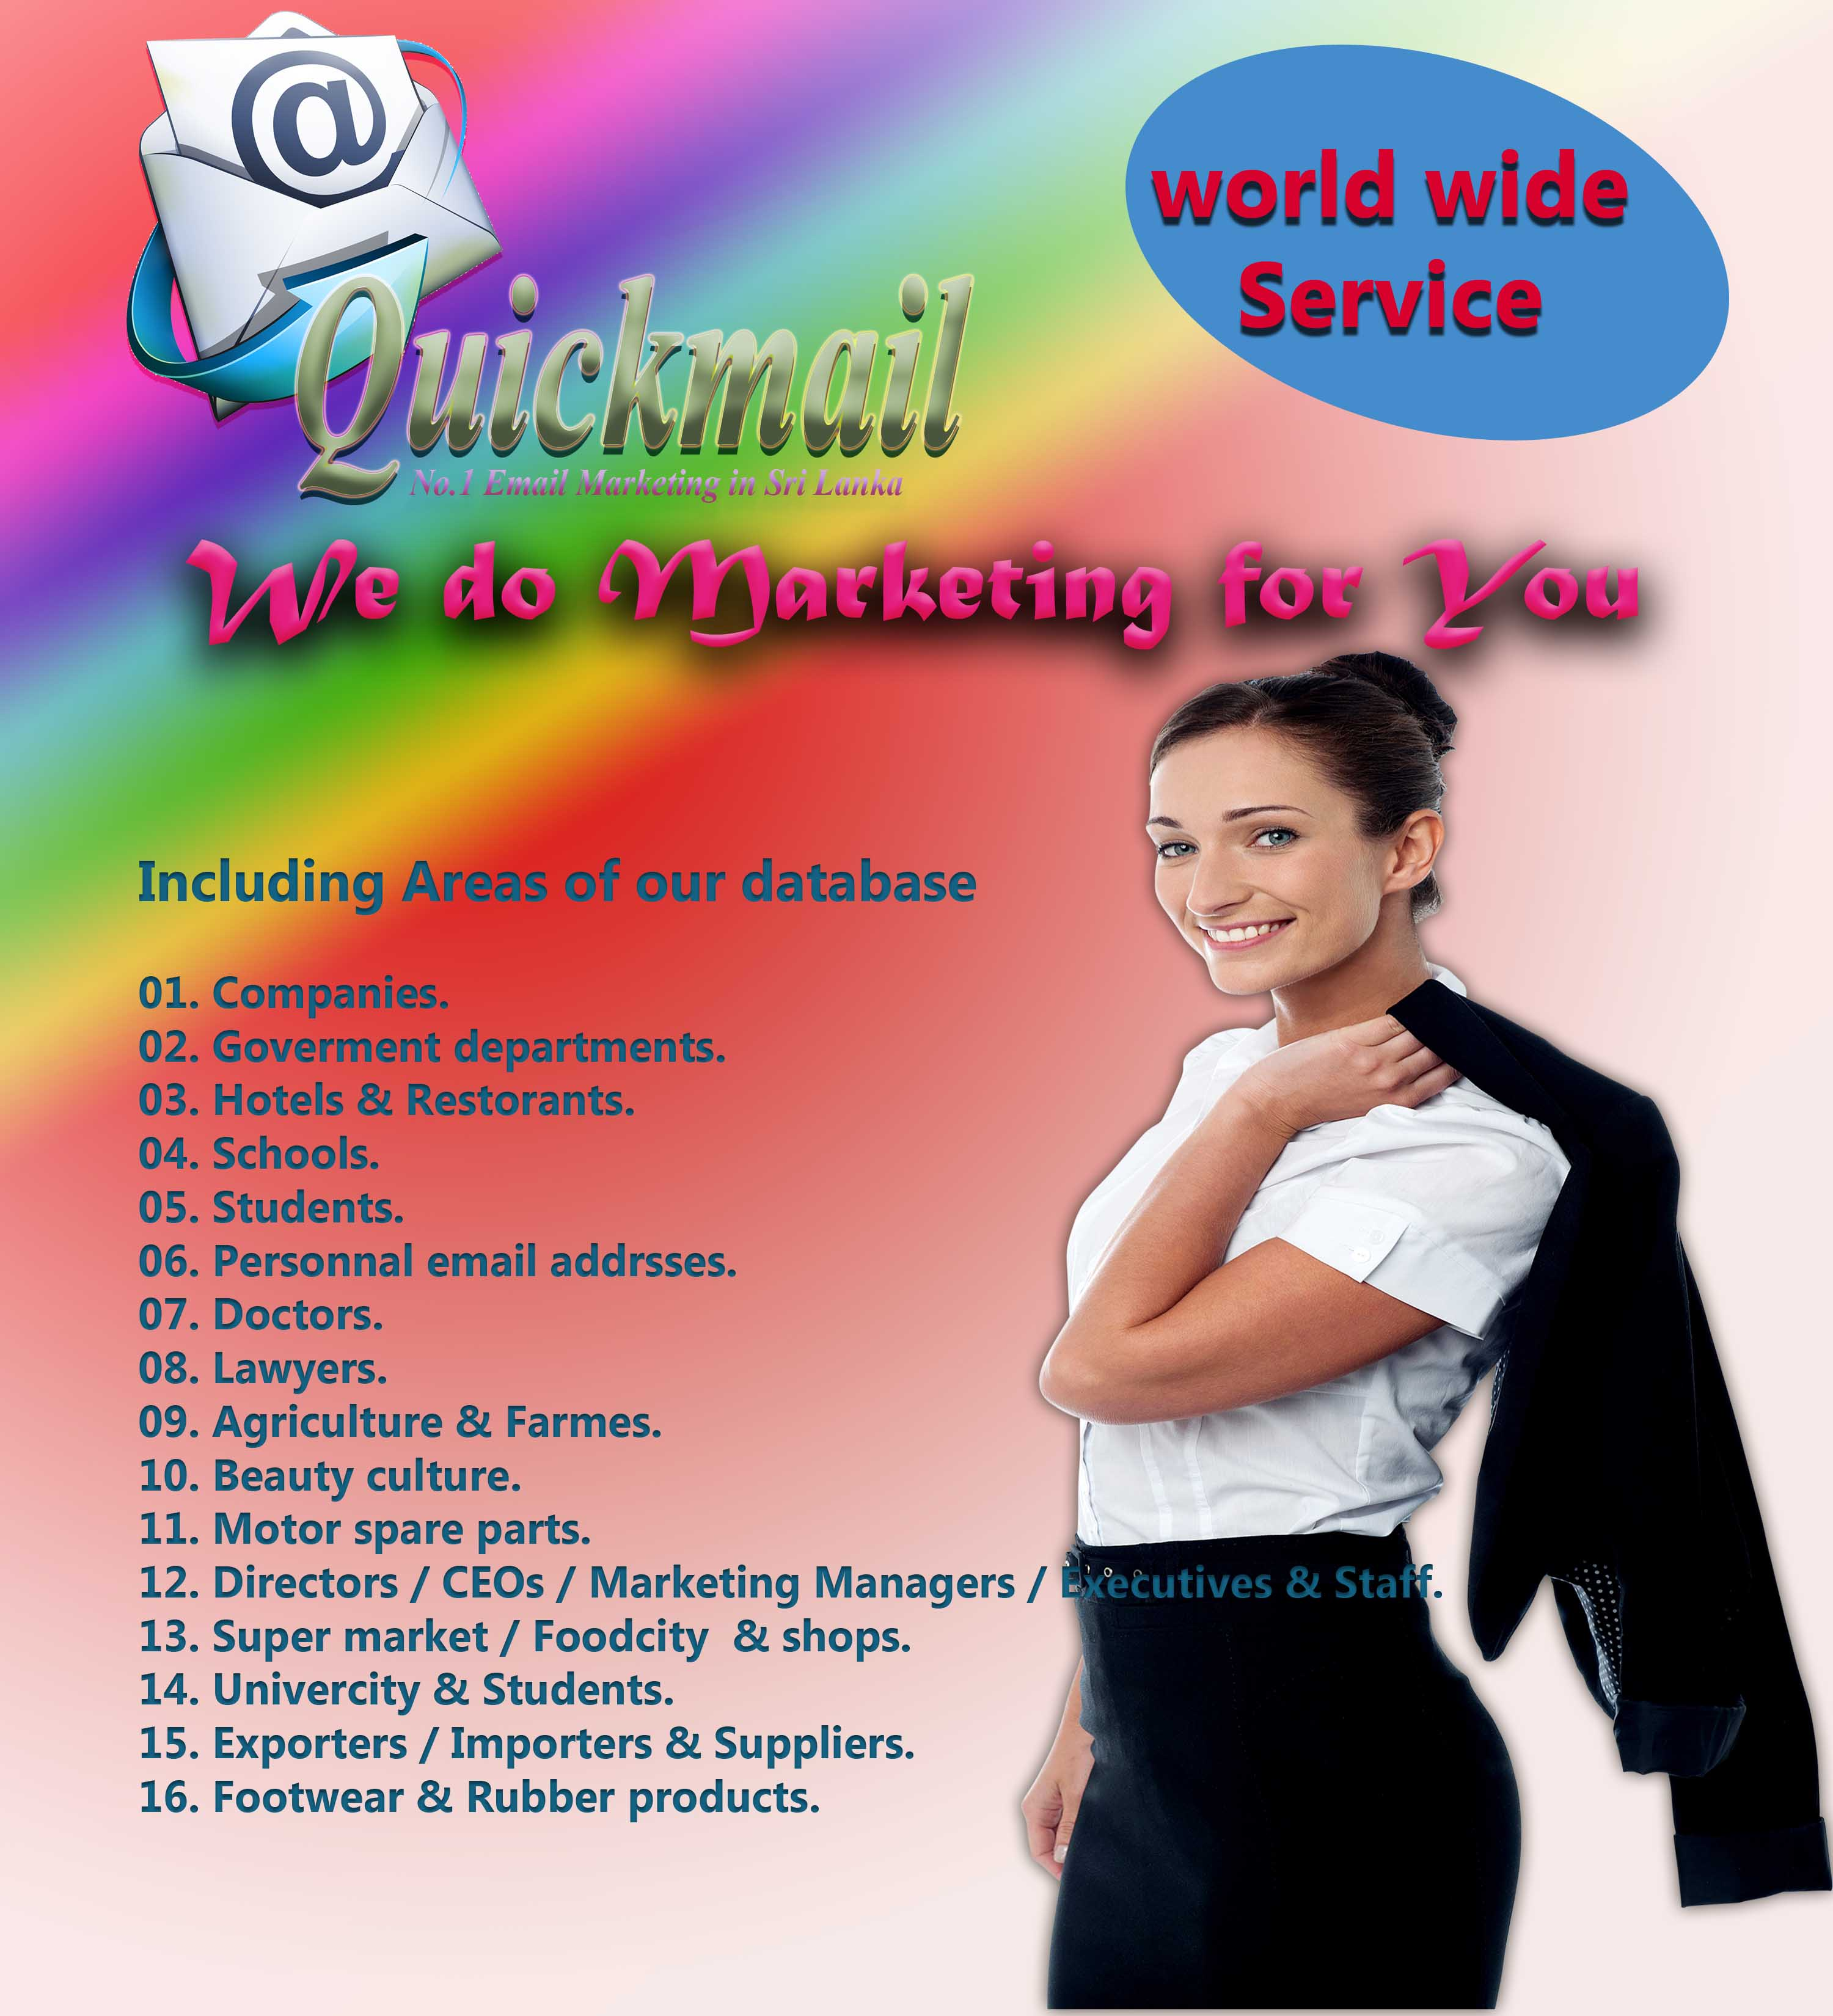 Do Email Marketing world wide service